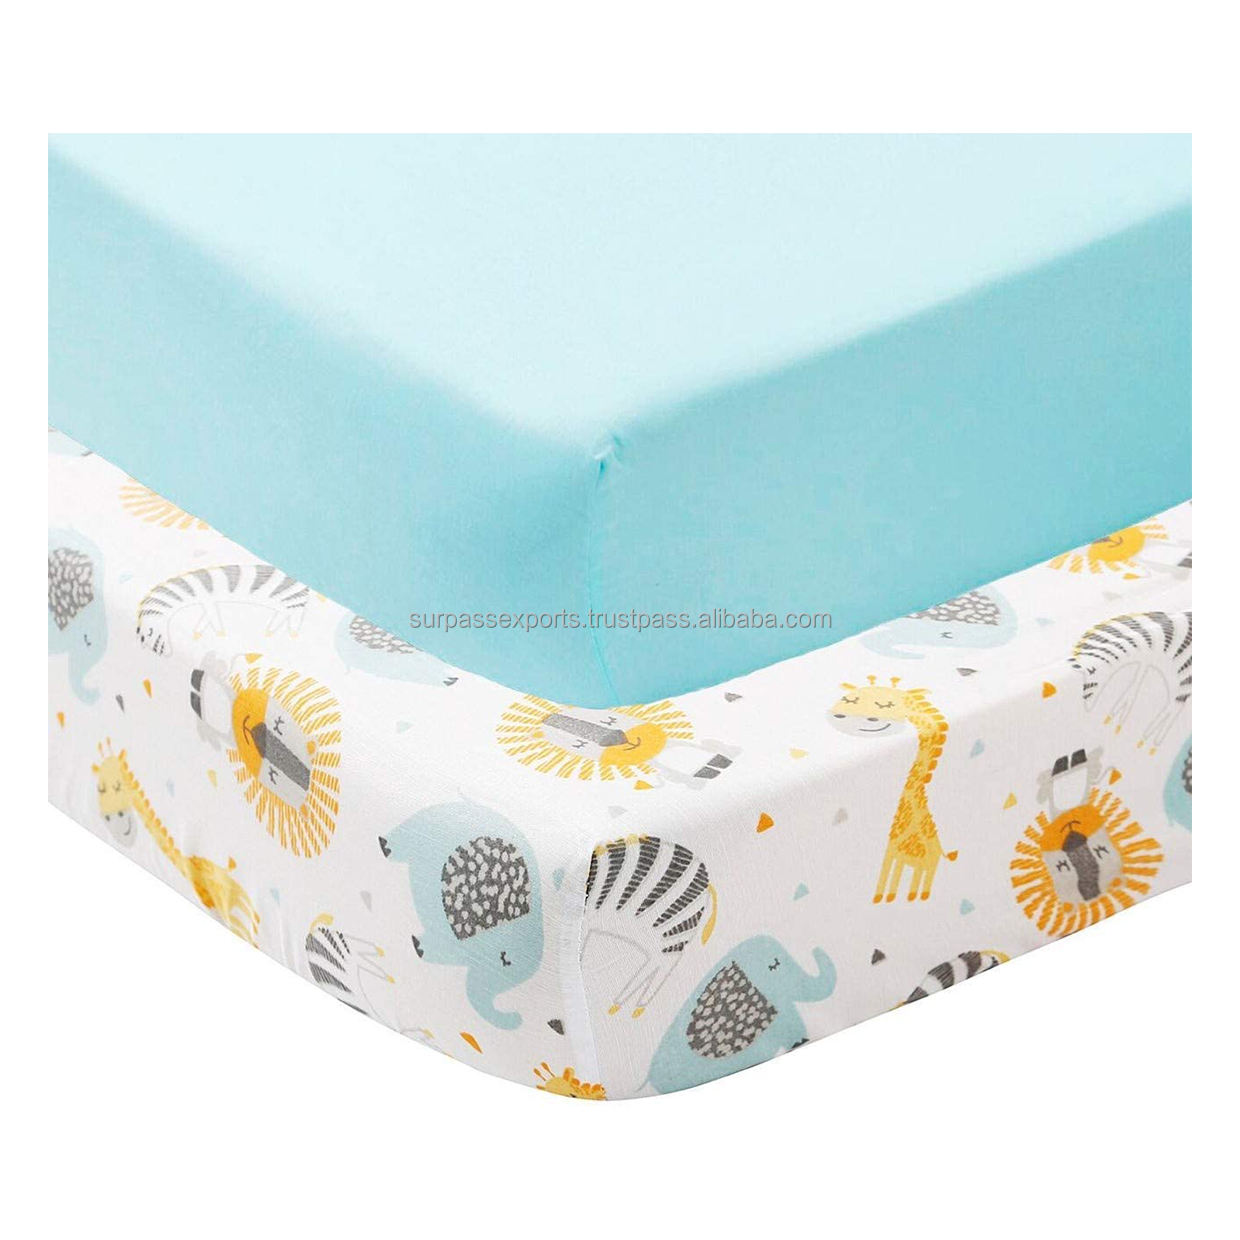 Custom Print Baby Fitted Crib Sheet for Baby Crib Bedding Set